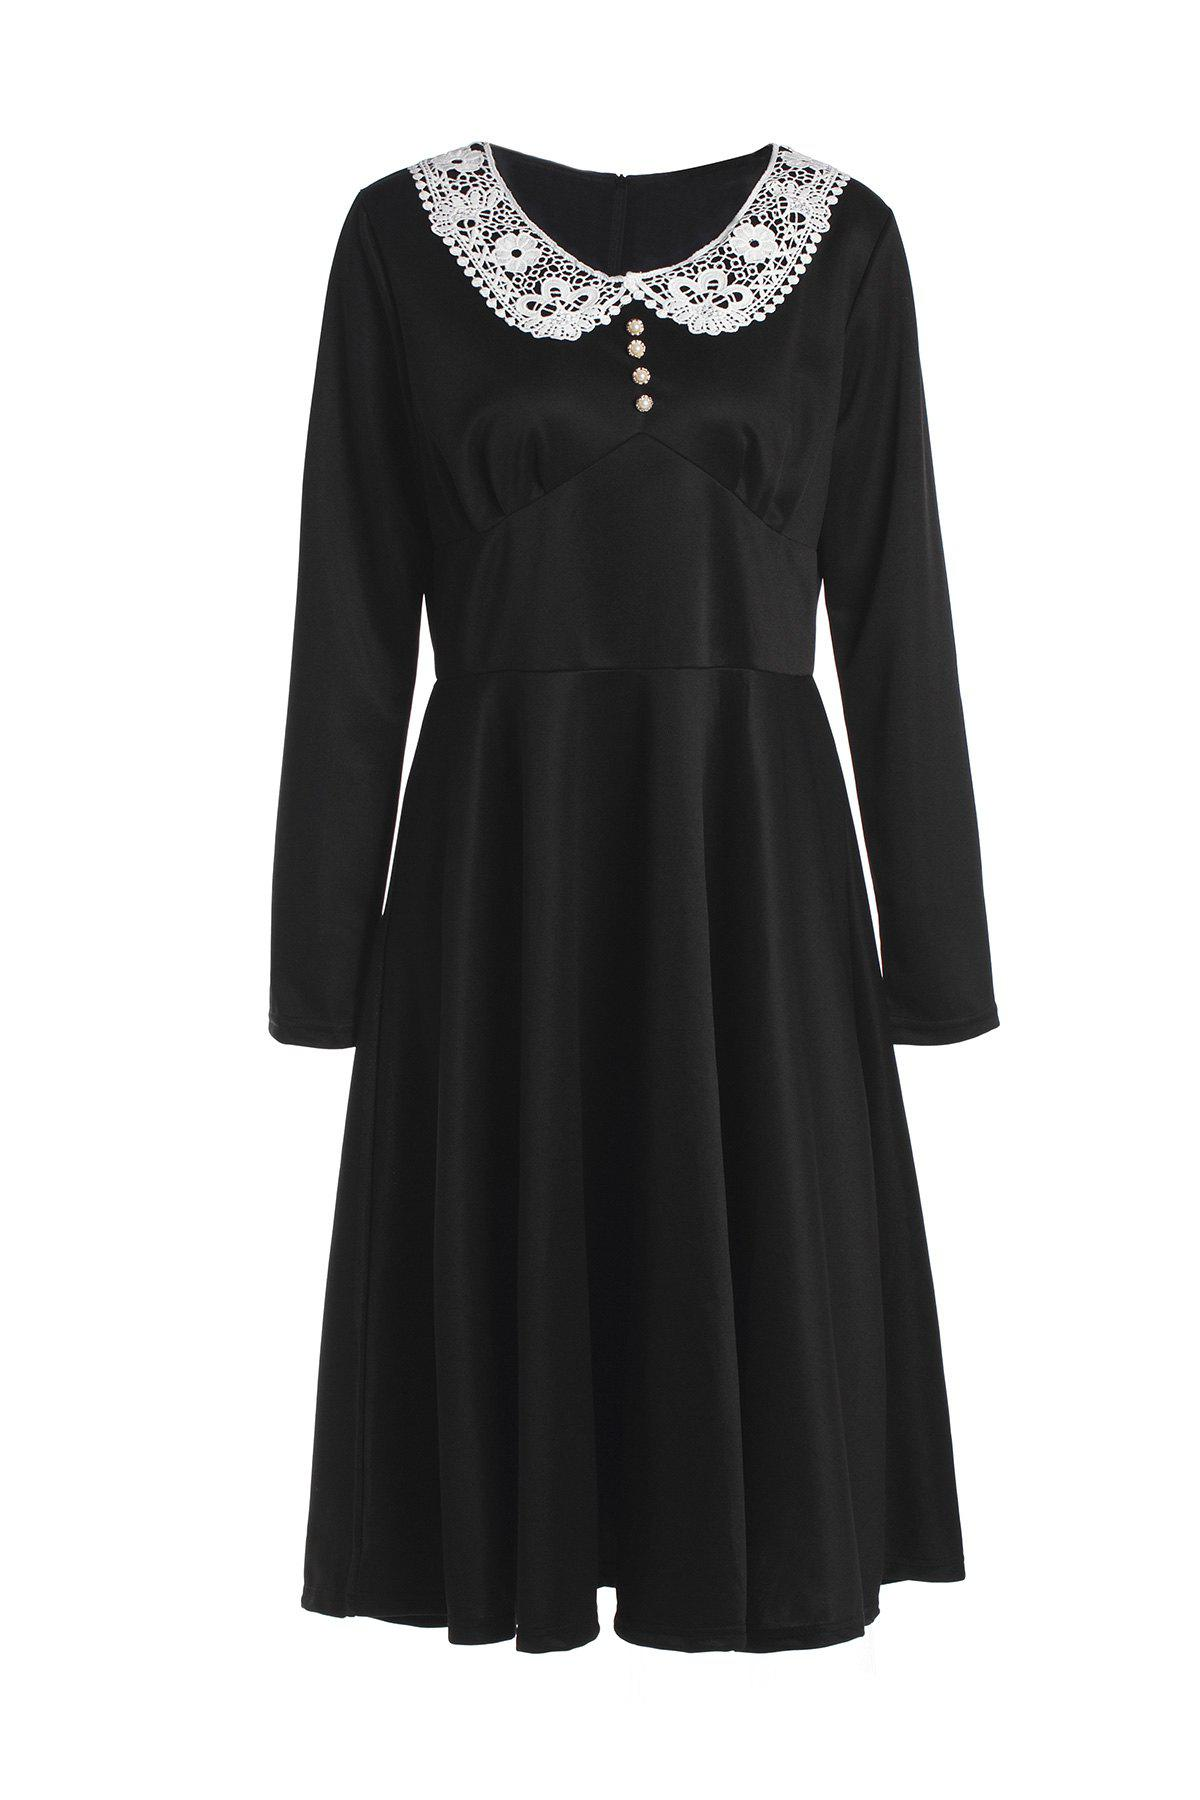 Noble Long Sleeve Peter Pan Collar Lace Spliced Women's Dress